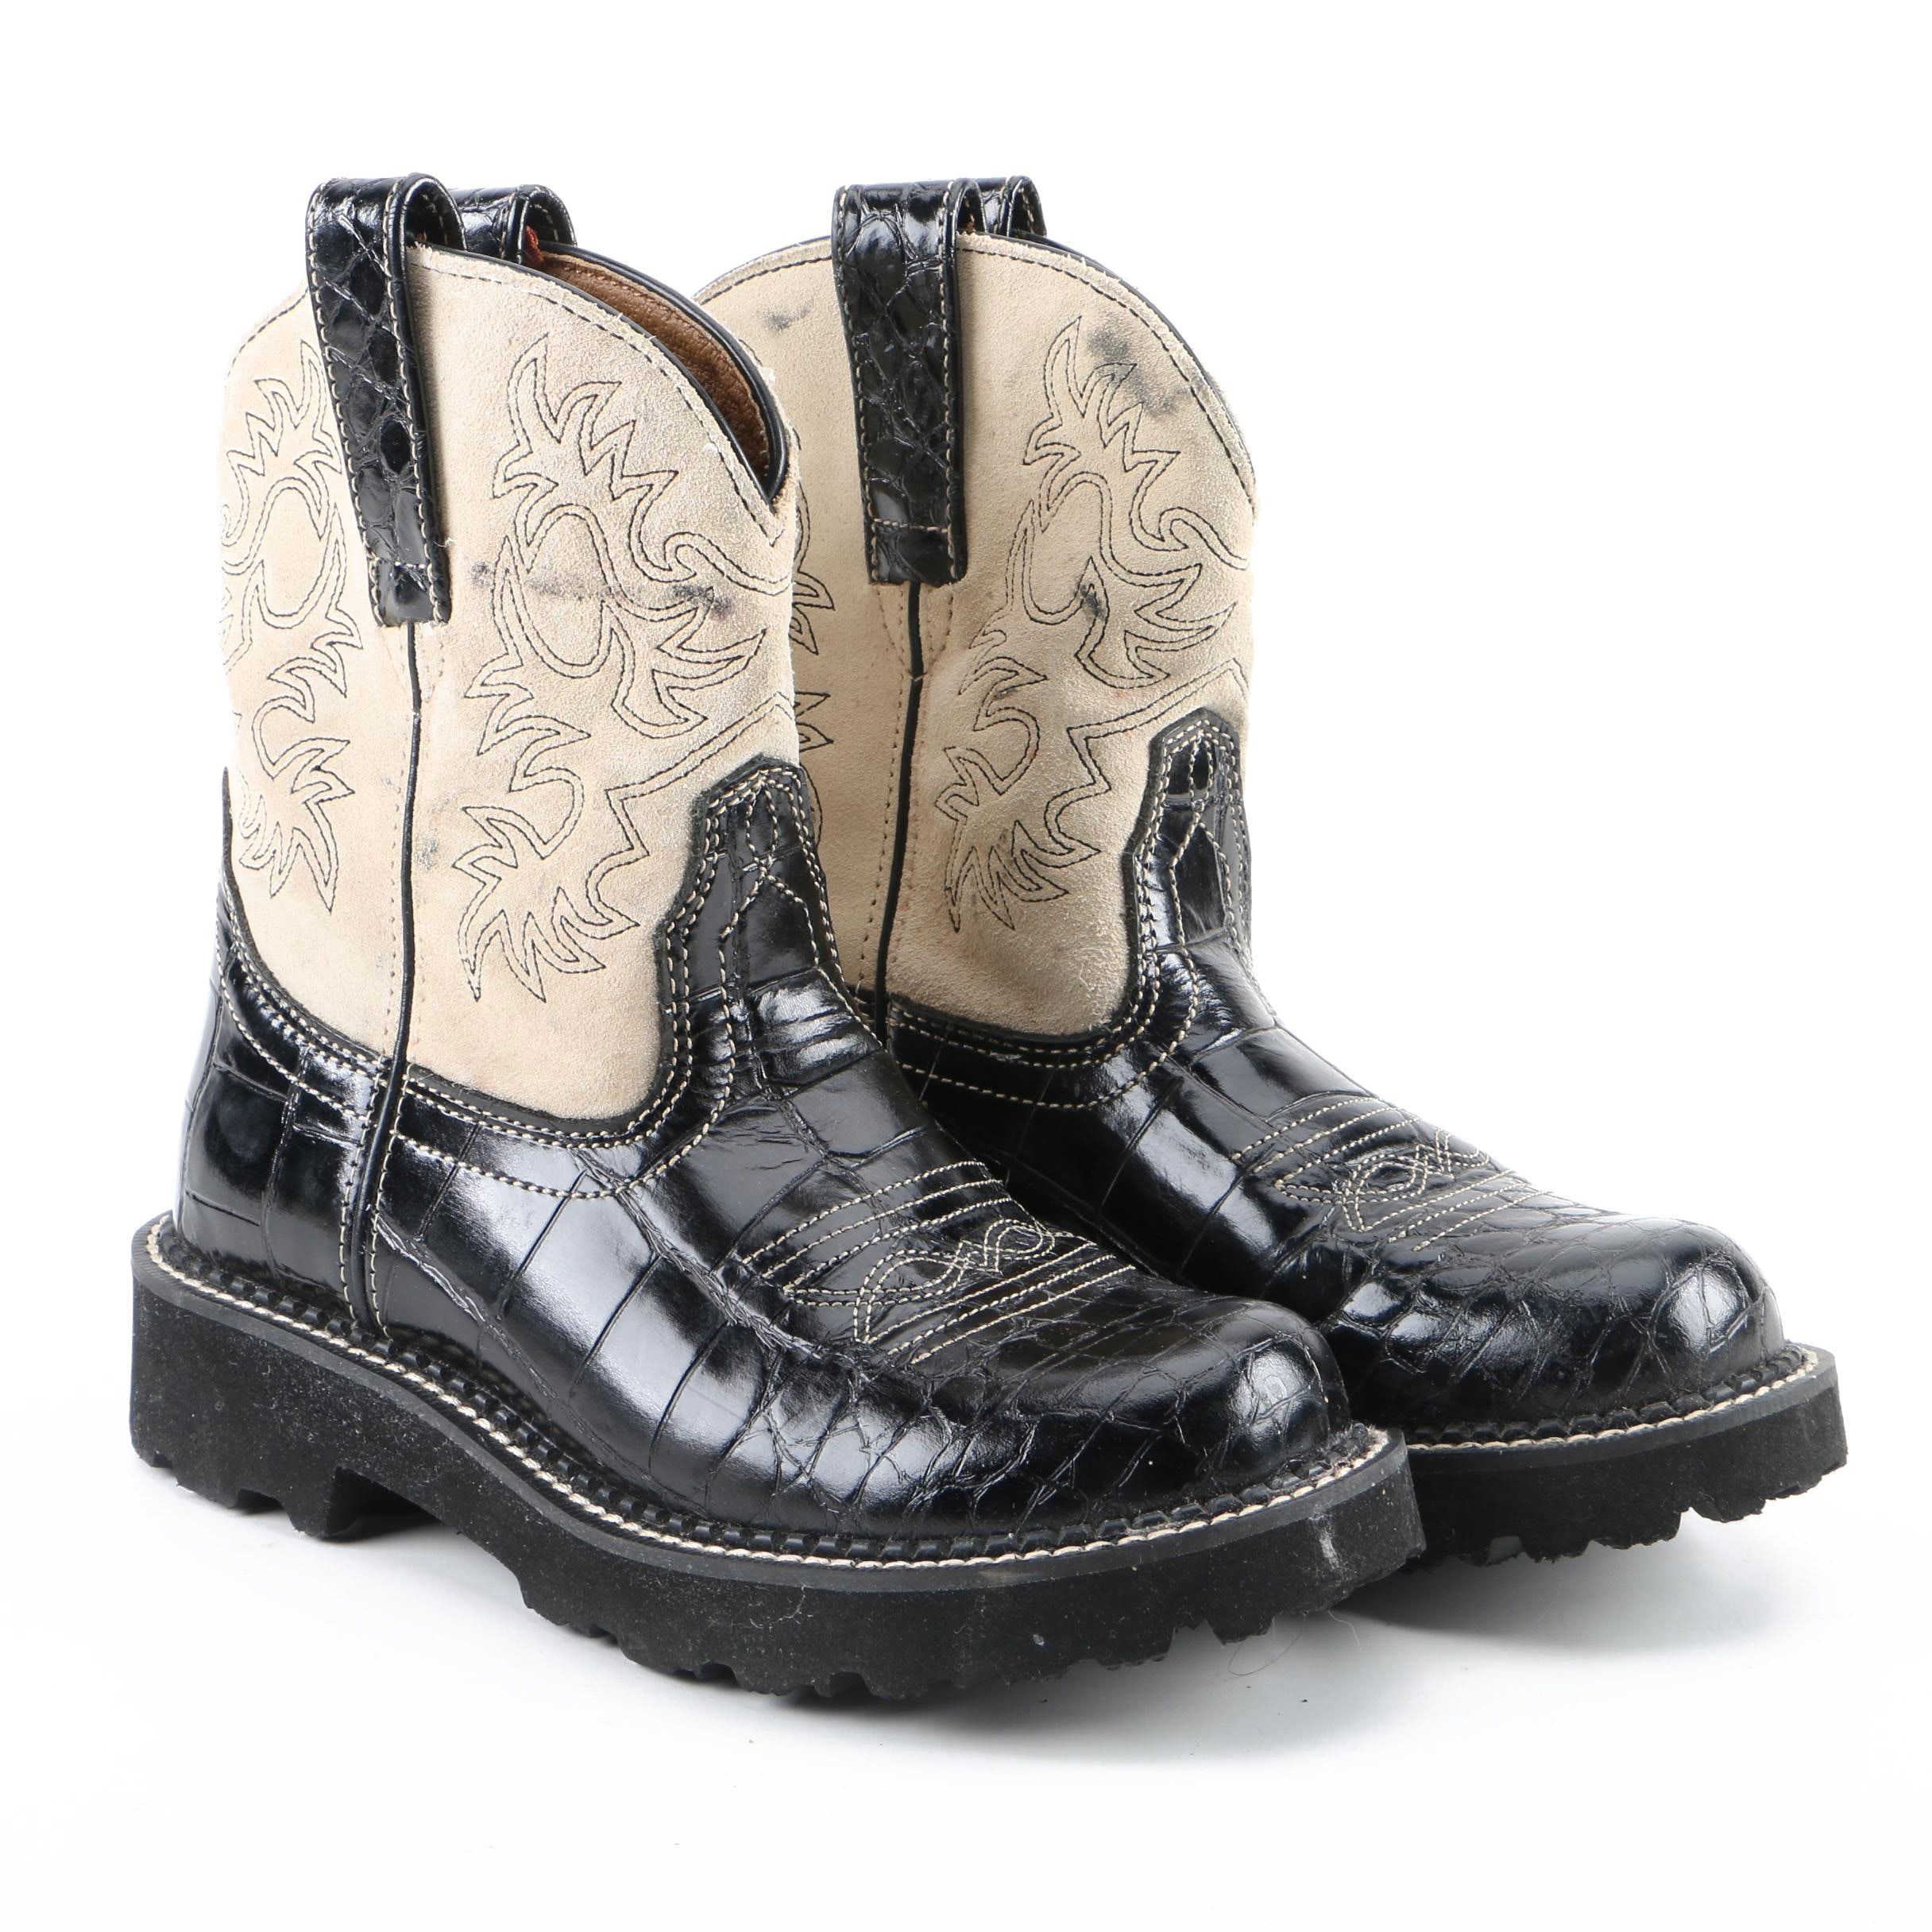 Women's Ariat Fatbaby Black Alligator Embossed Leather Western Boots